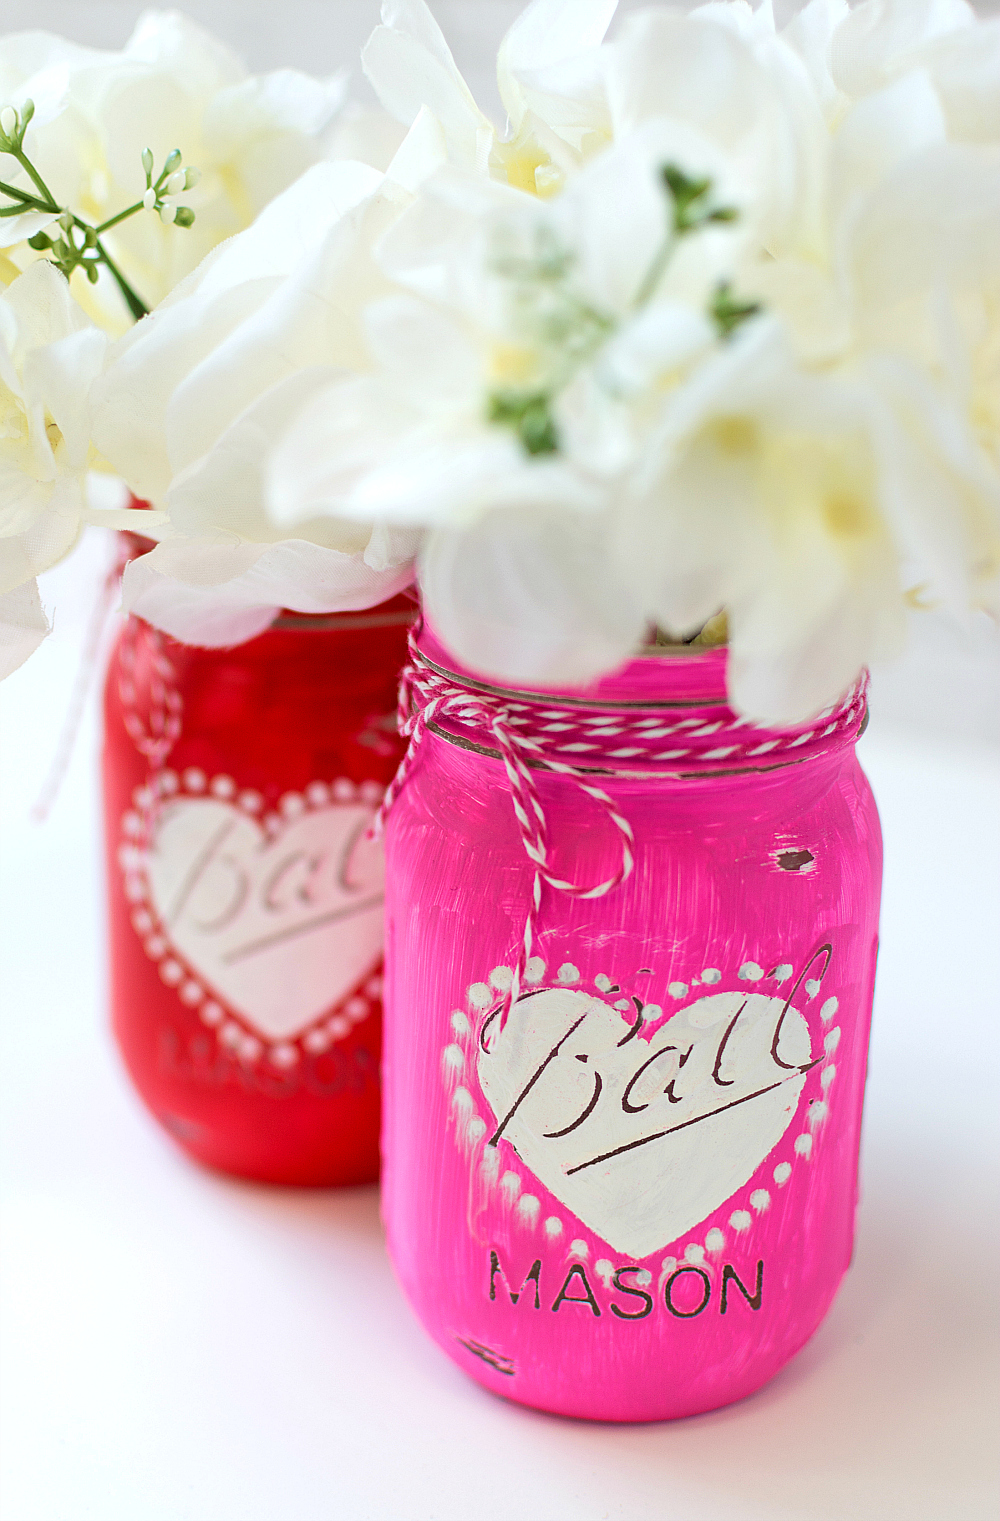 Heart Jar Craft Mason Jar Crafts Love